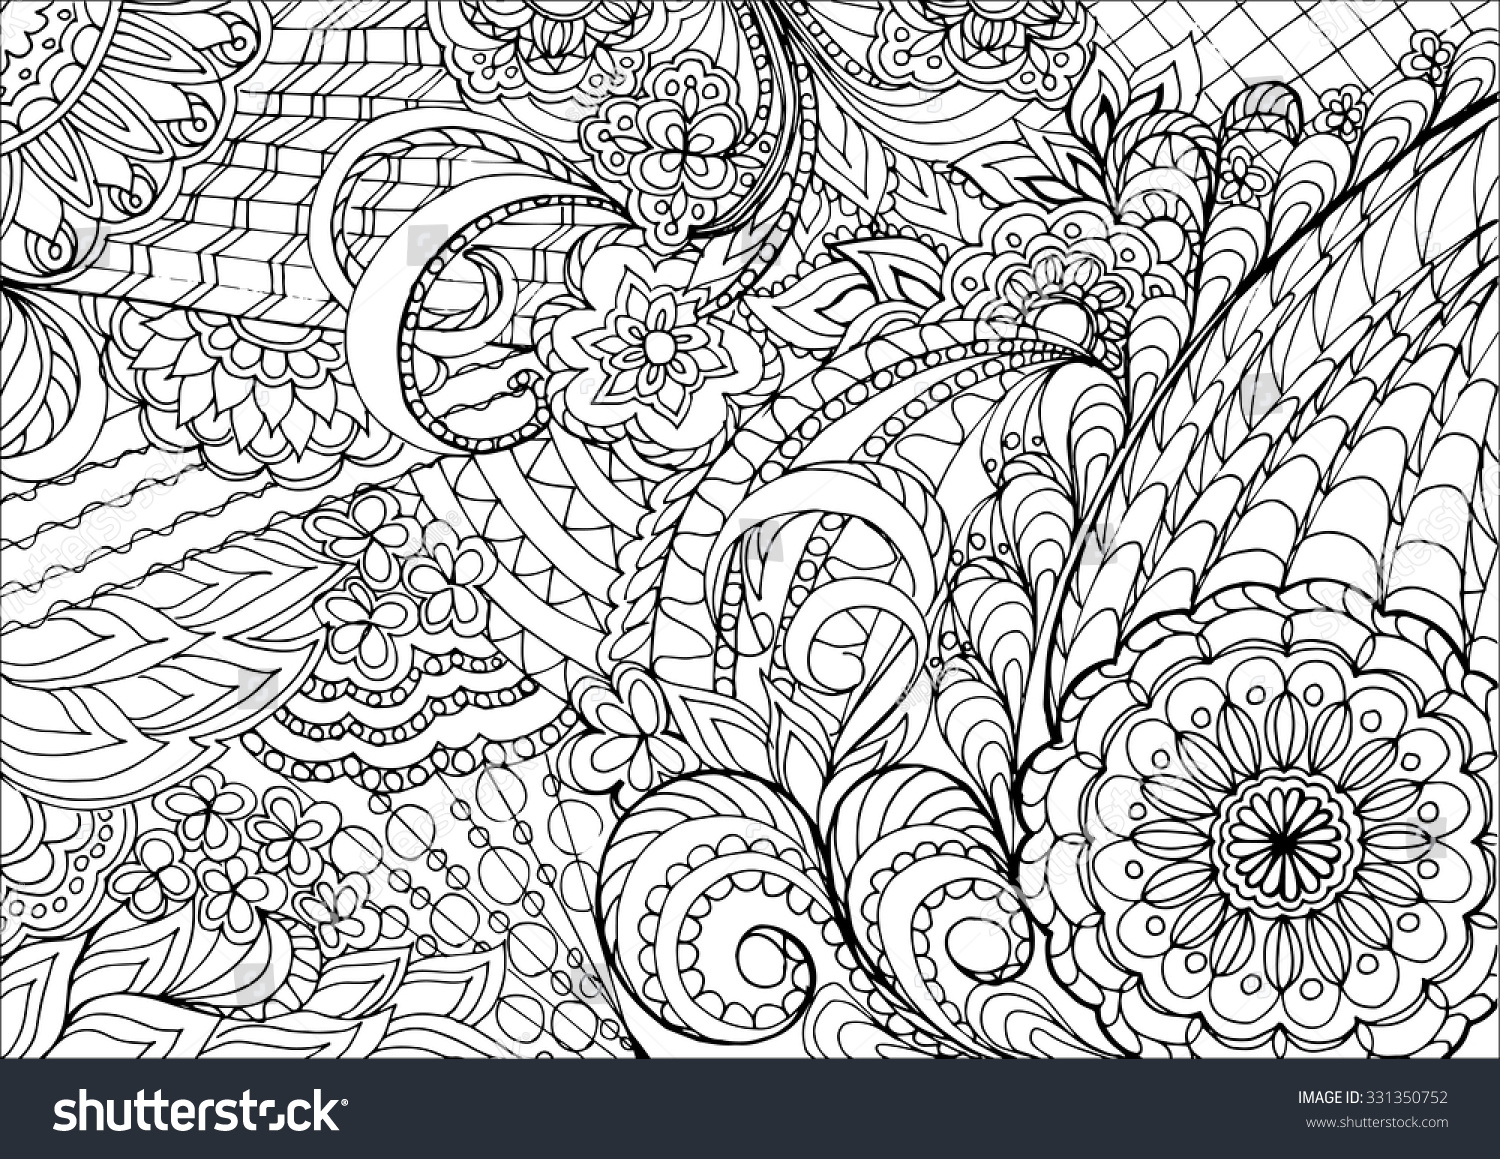 Zen coloring flowers - Hand Drawn Decorated Image With Flowers In Zen Style Image For Adult Coloring Book